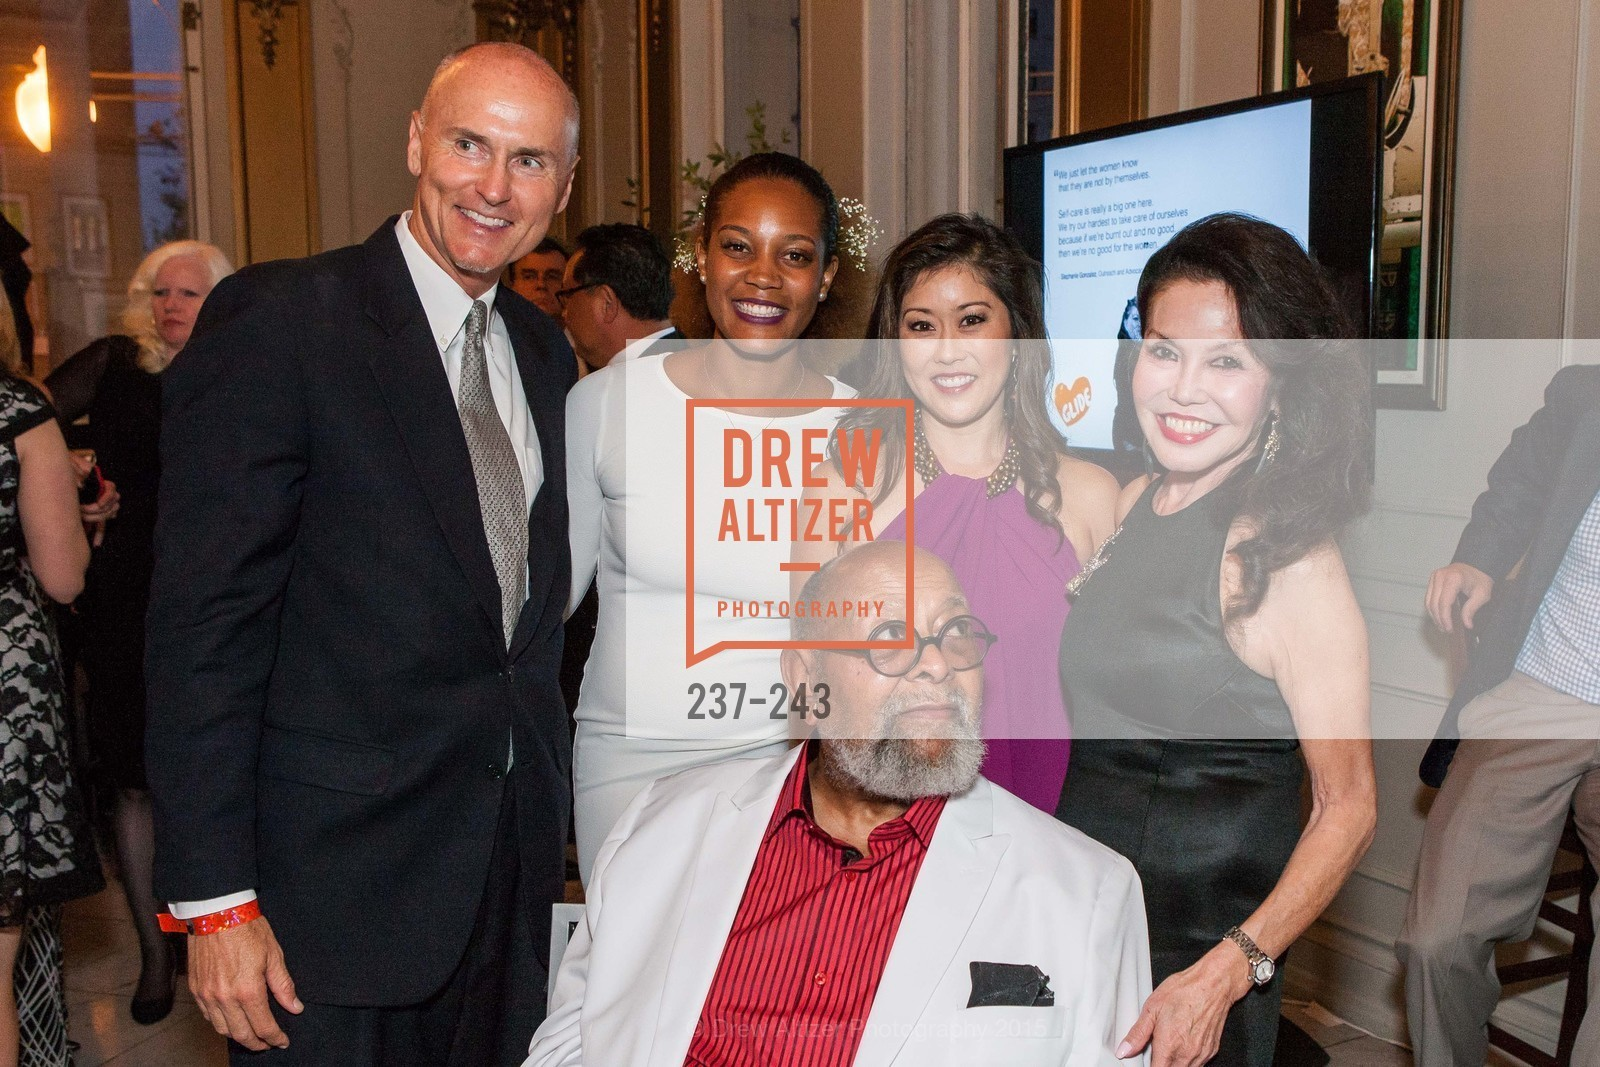 Chip Conley, Chinaka Hodge, Kristi Yamaguchi, Cecil Williams, Janice Mirikitani, 6TH ANNUAL GLIDE LEGACY GALA, The Regency Ballroom. 1300 Van Ness Ave, August 22nd, 2015,Drew Altizer, Drew Altizer Photography, full-service agency, private events, San Francisco photographer, photographer california